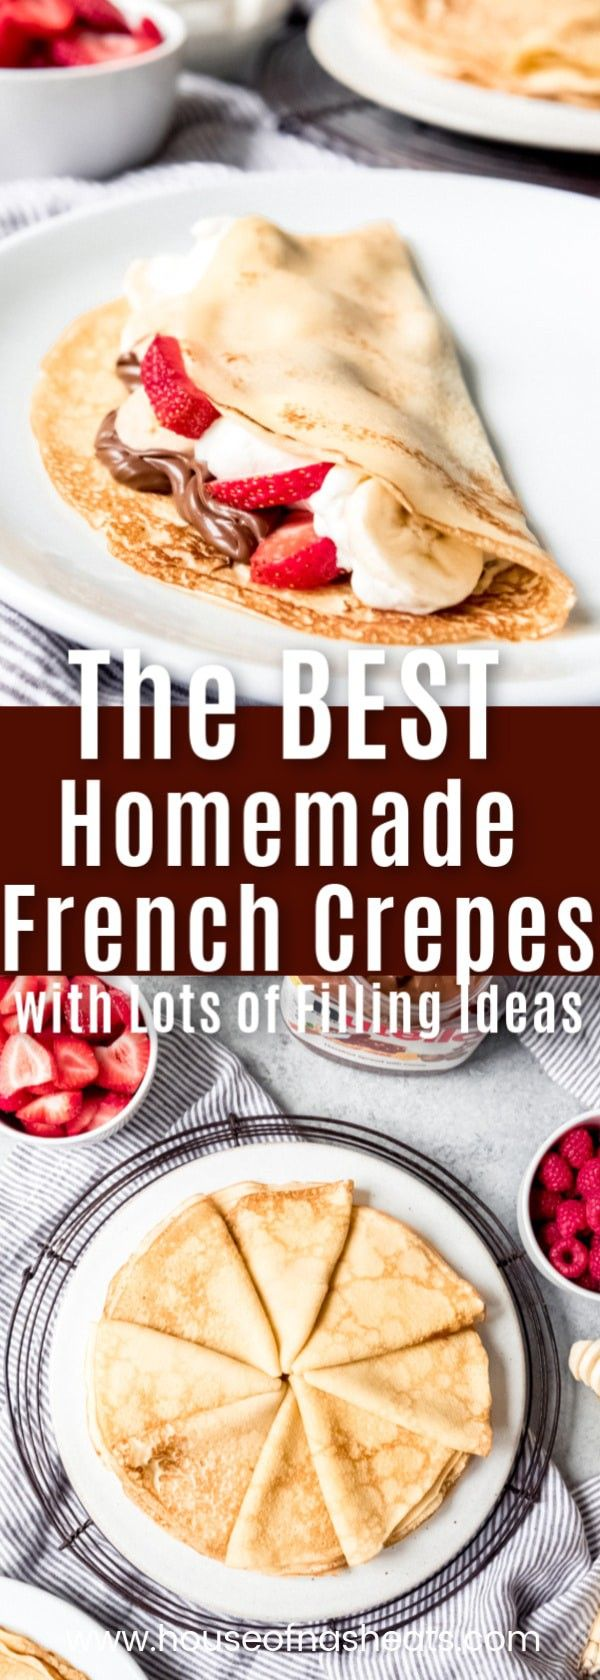 Crepes Recipe (How to Make Crepes and Crepe Filling Ideas) - House of Nash Eats